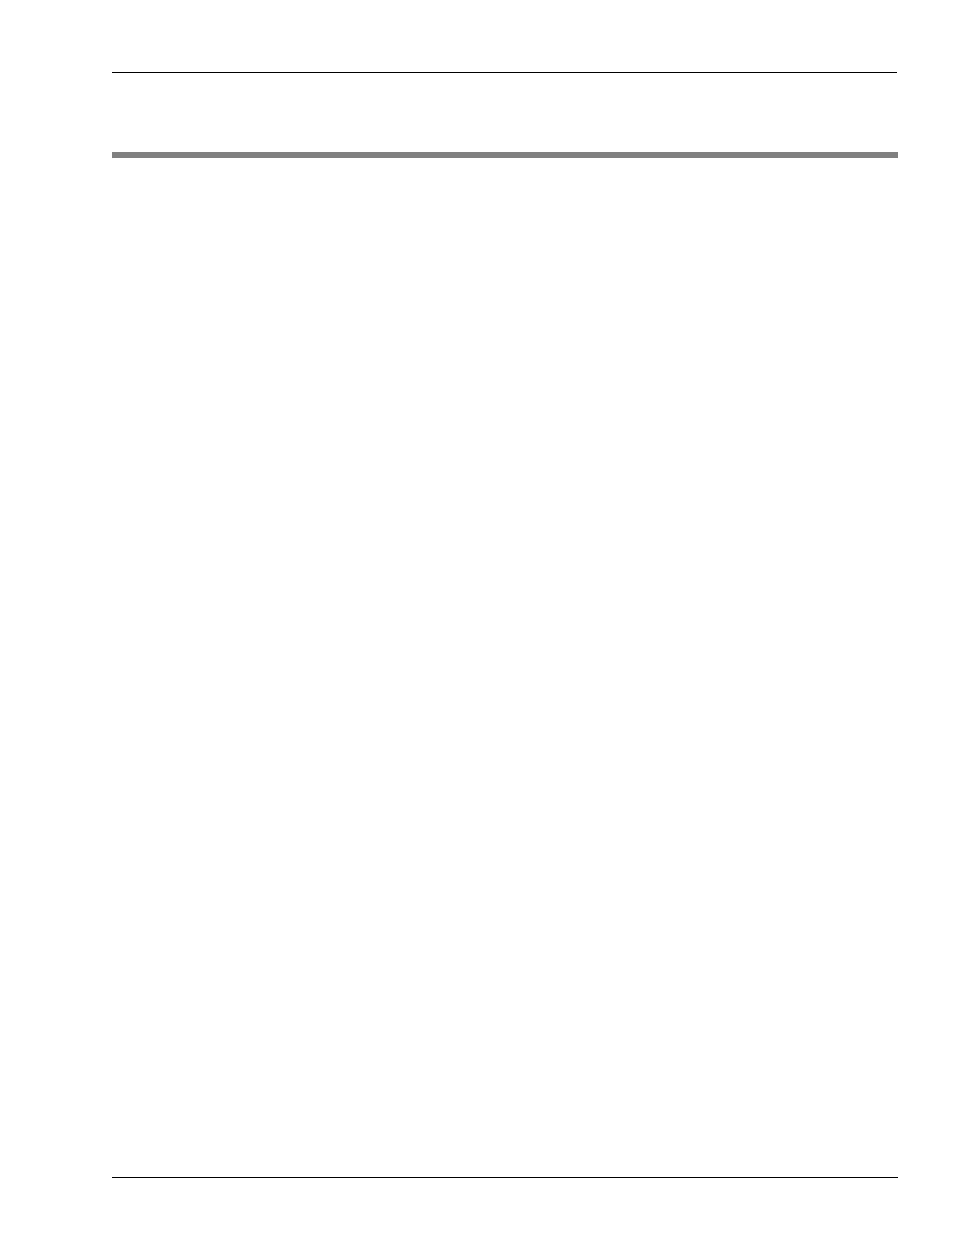 2 installing mce, windows version requirements, environmental  2 installing mce, windows version requirements, environmental requirements gasboy magnetic card encoder user manual page 7 42